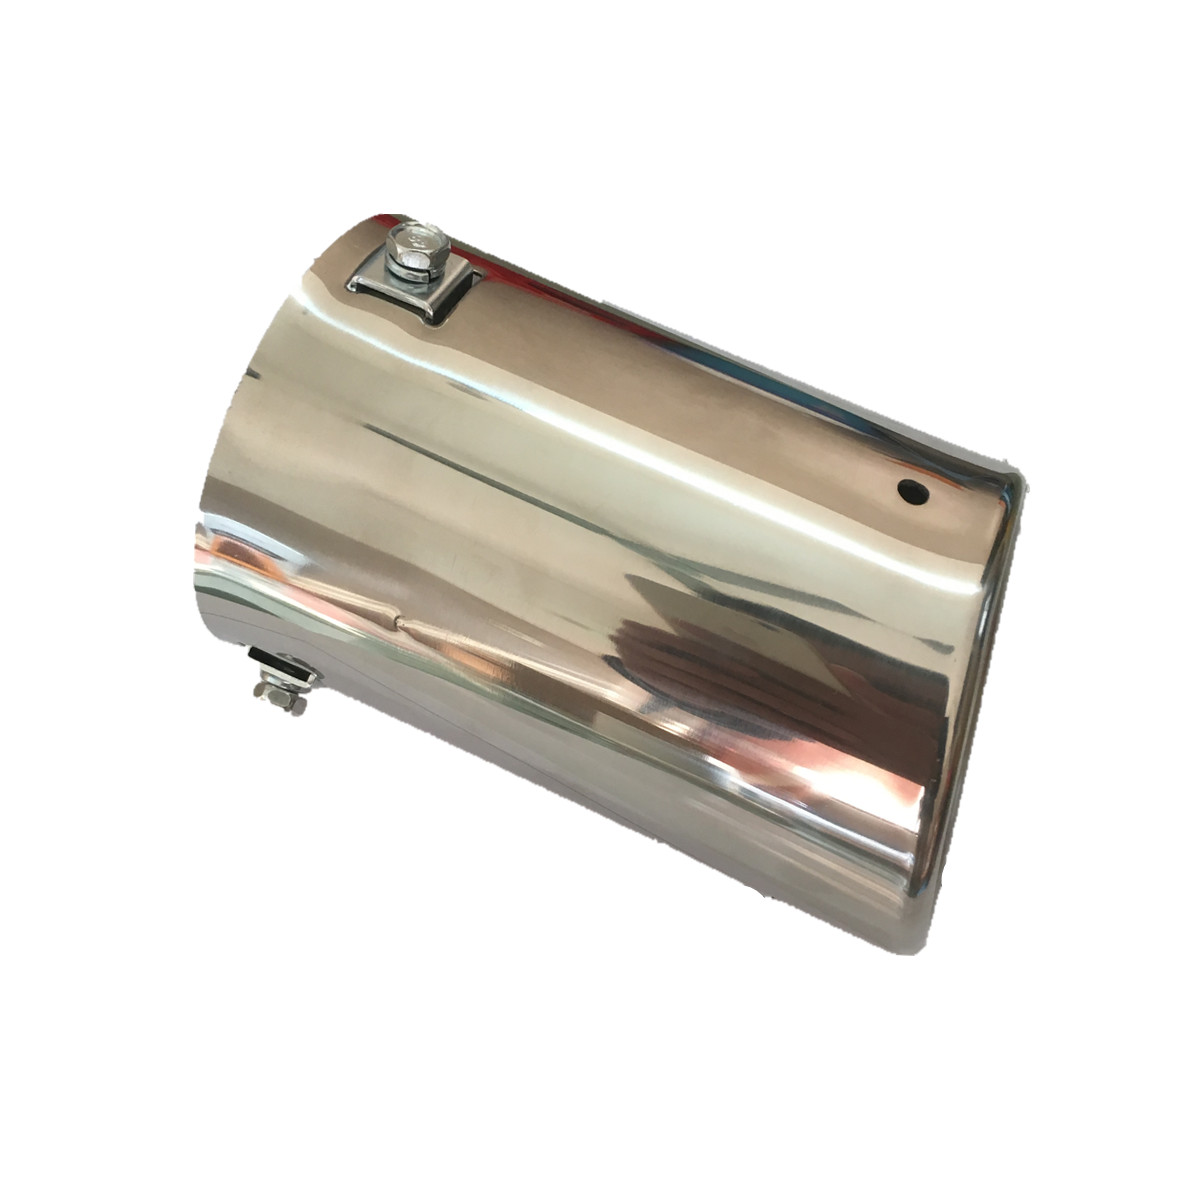 Stainless Steel Exhaust Pipe Tail Throat for <font><b>Toyota</b></font> <font><b>Land</b></font> <font><b>Cruiser</b></font> <font><b>Prado</b></font> <font><b>120</b></font> <font><b>2003</b></font> 2004 2005 2006 2007 2008 <font><b>2009</b></font> Accessories image